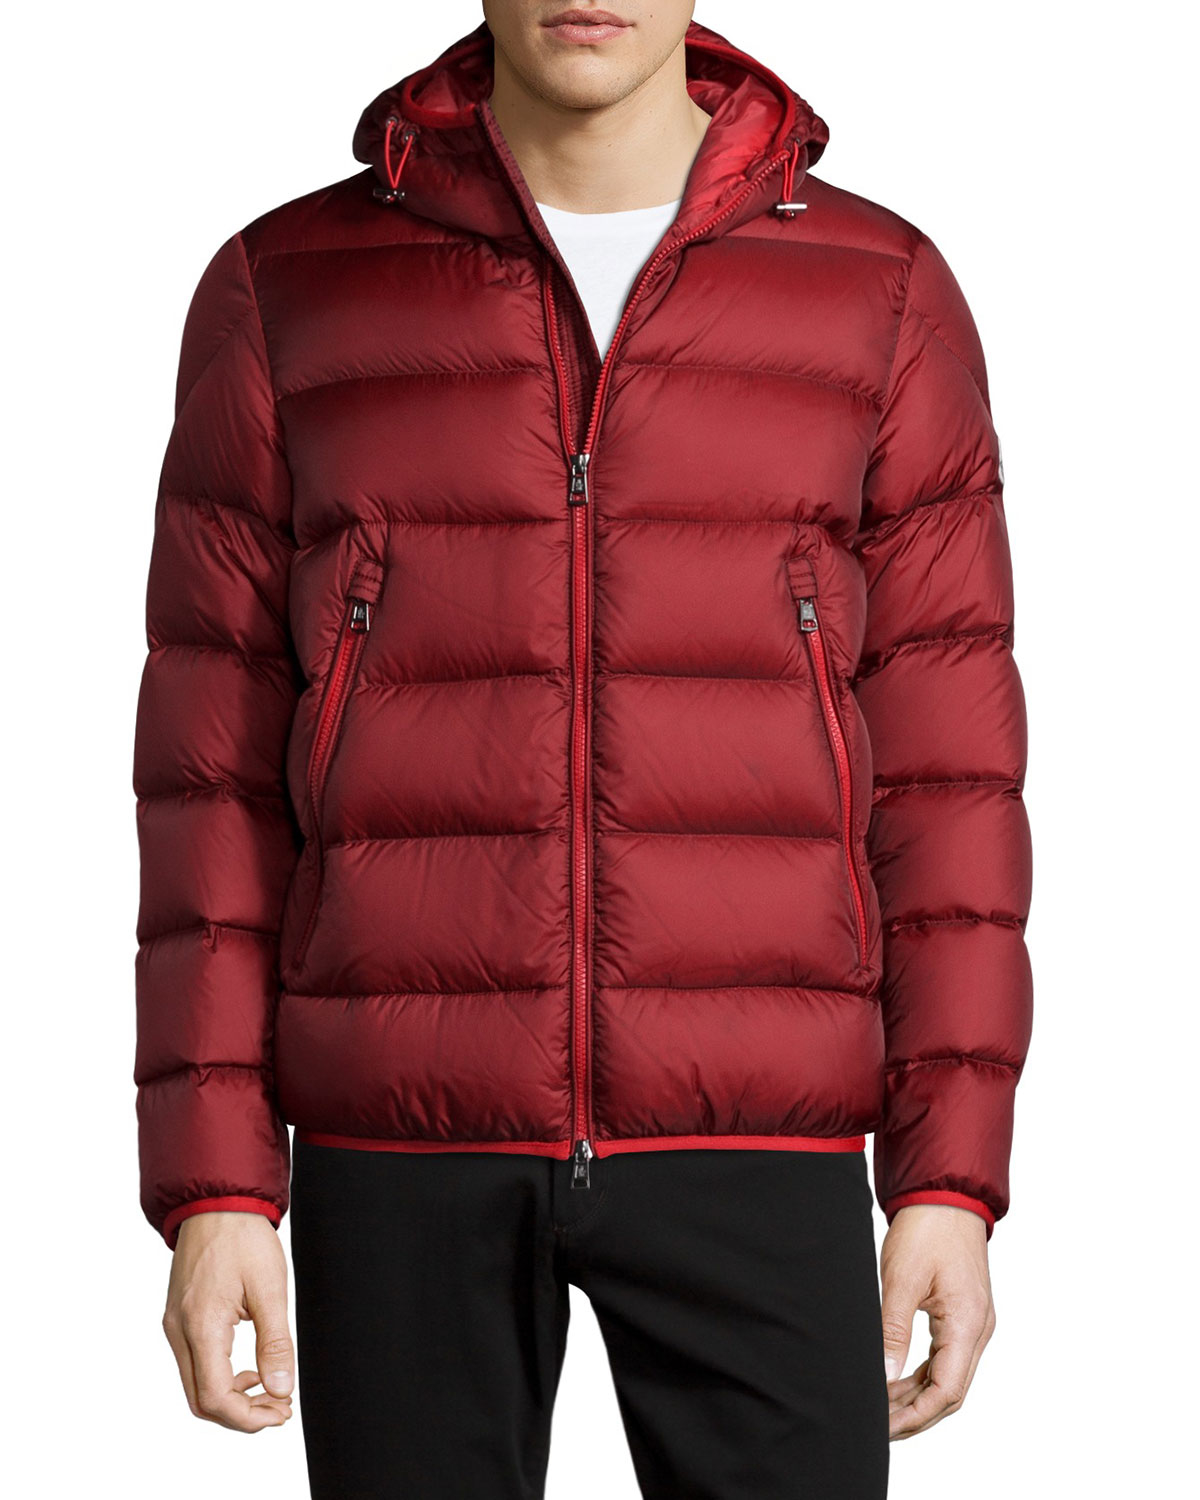 b2f7305d4139 Lyst - Moncler Chauvon Hooded Puffer Jacket in Red for Men